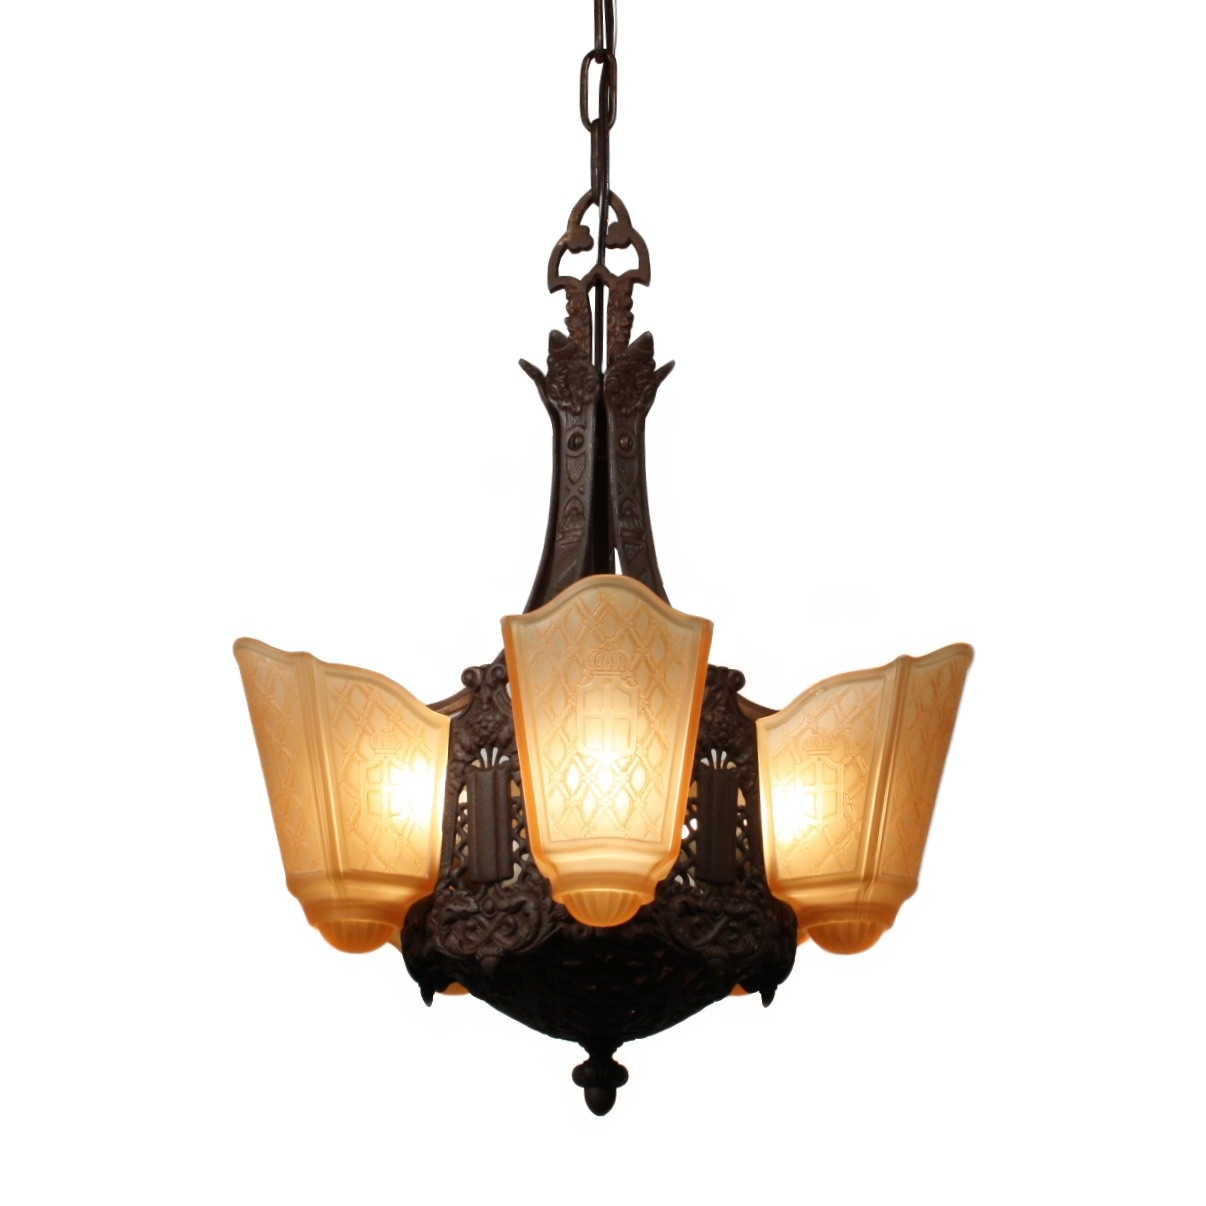 Antique Moe Bridges Cast Iron Art Deco Slip Shade Chandelier For Cast Iron Antique Chandelier (Image 8 of 15)